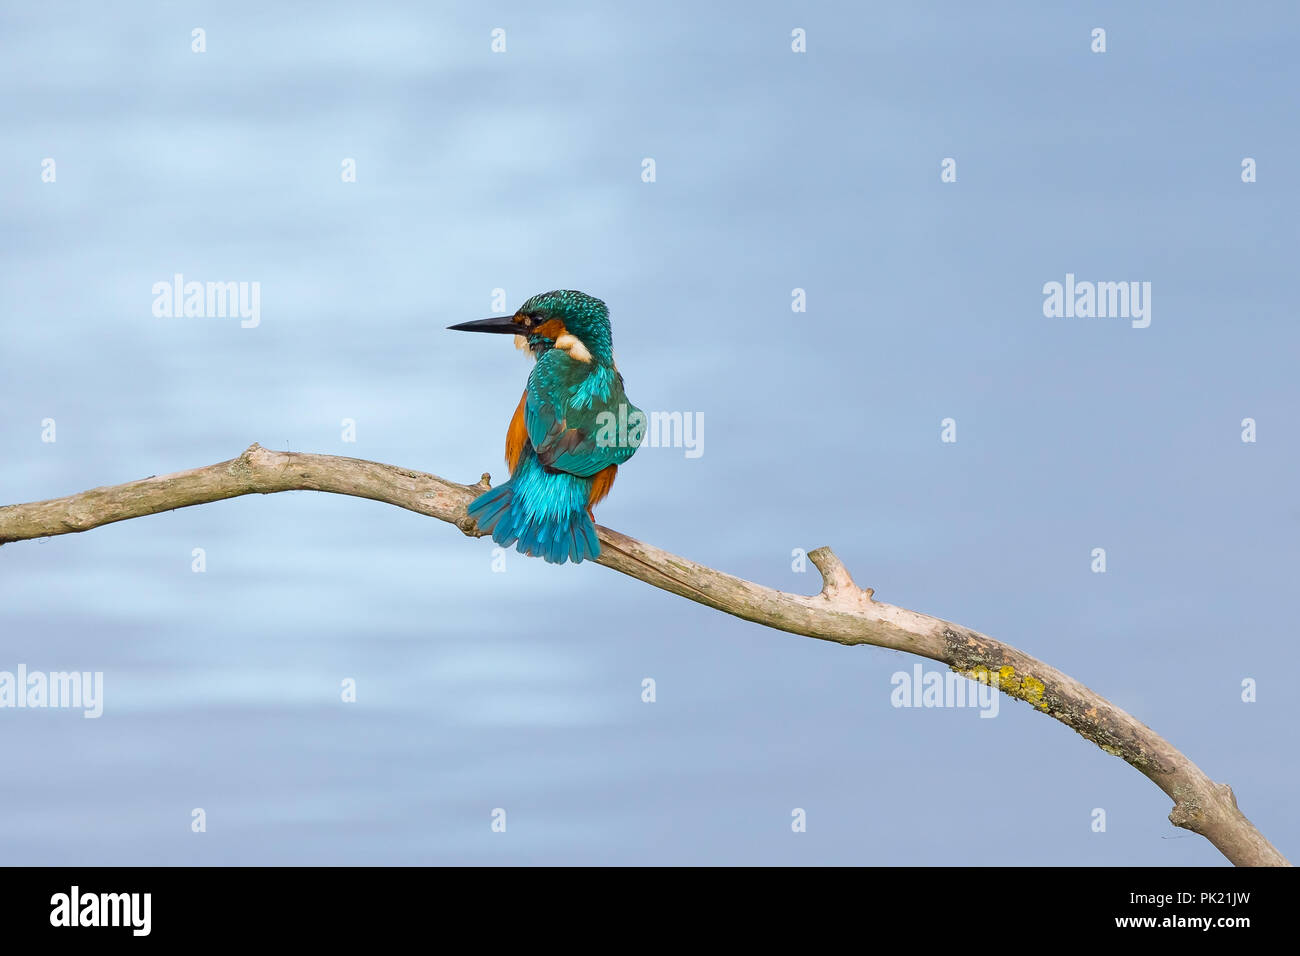 Detailed, landscape close up of a single common kingfisher (Alcedo atthis) rear view, perched on branch above water, fanning out his tail feathers. - Stock Image